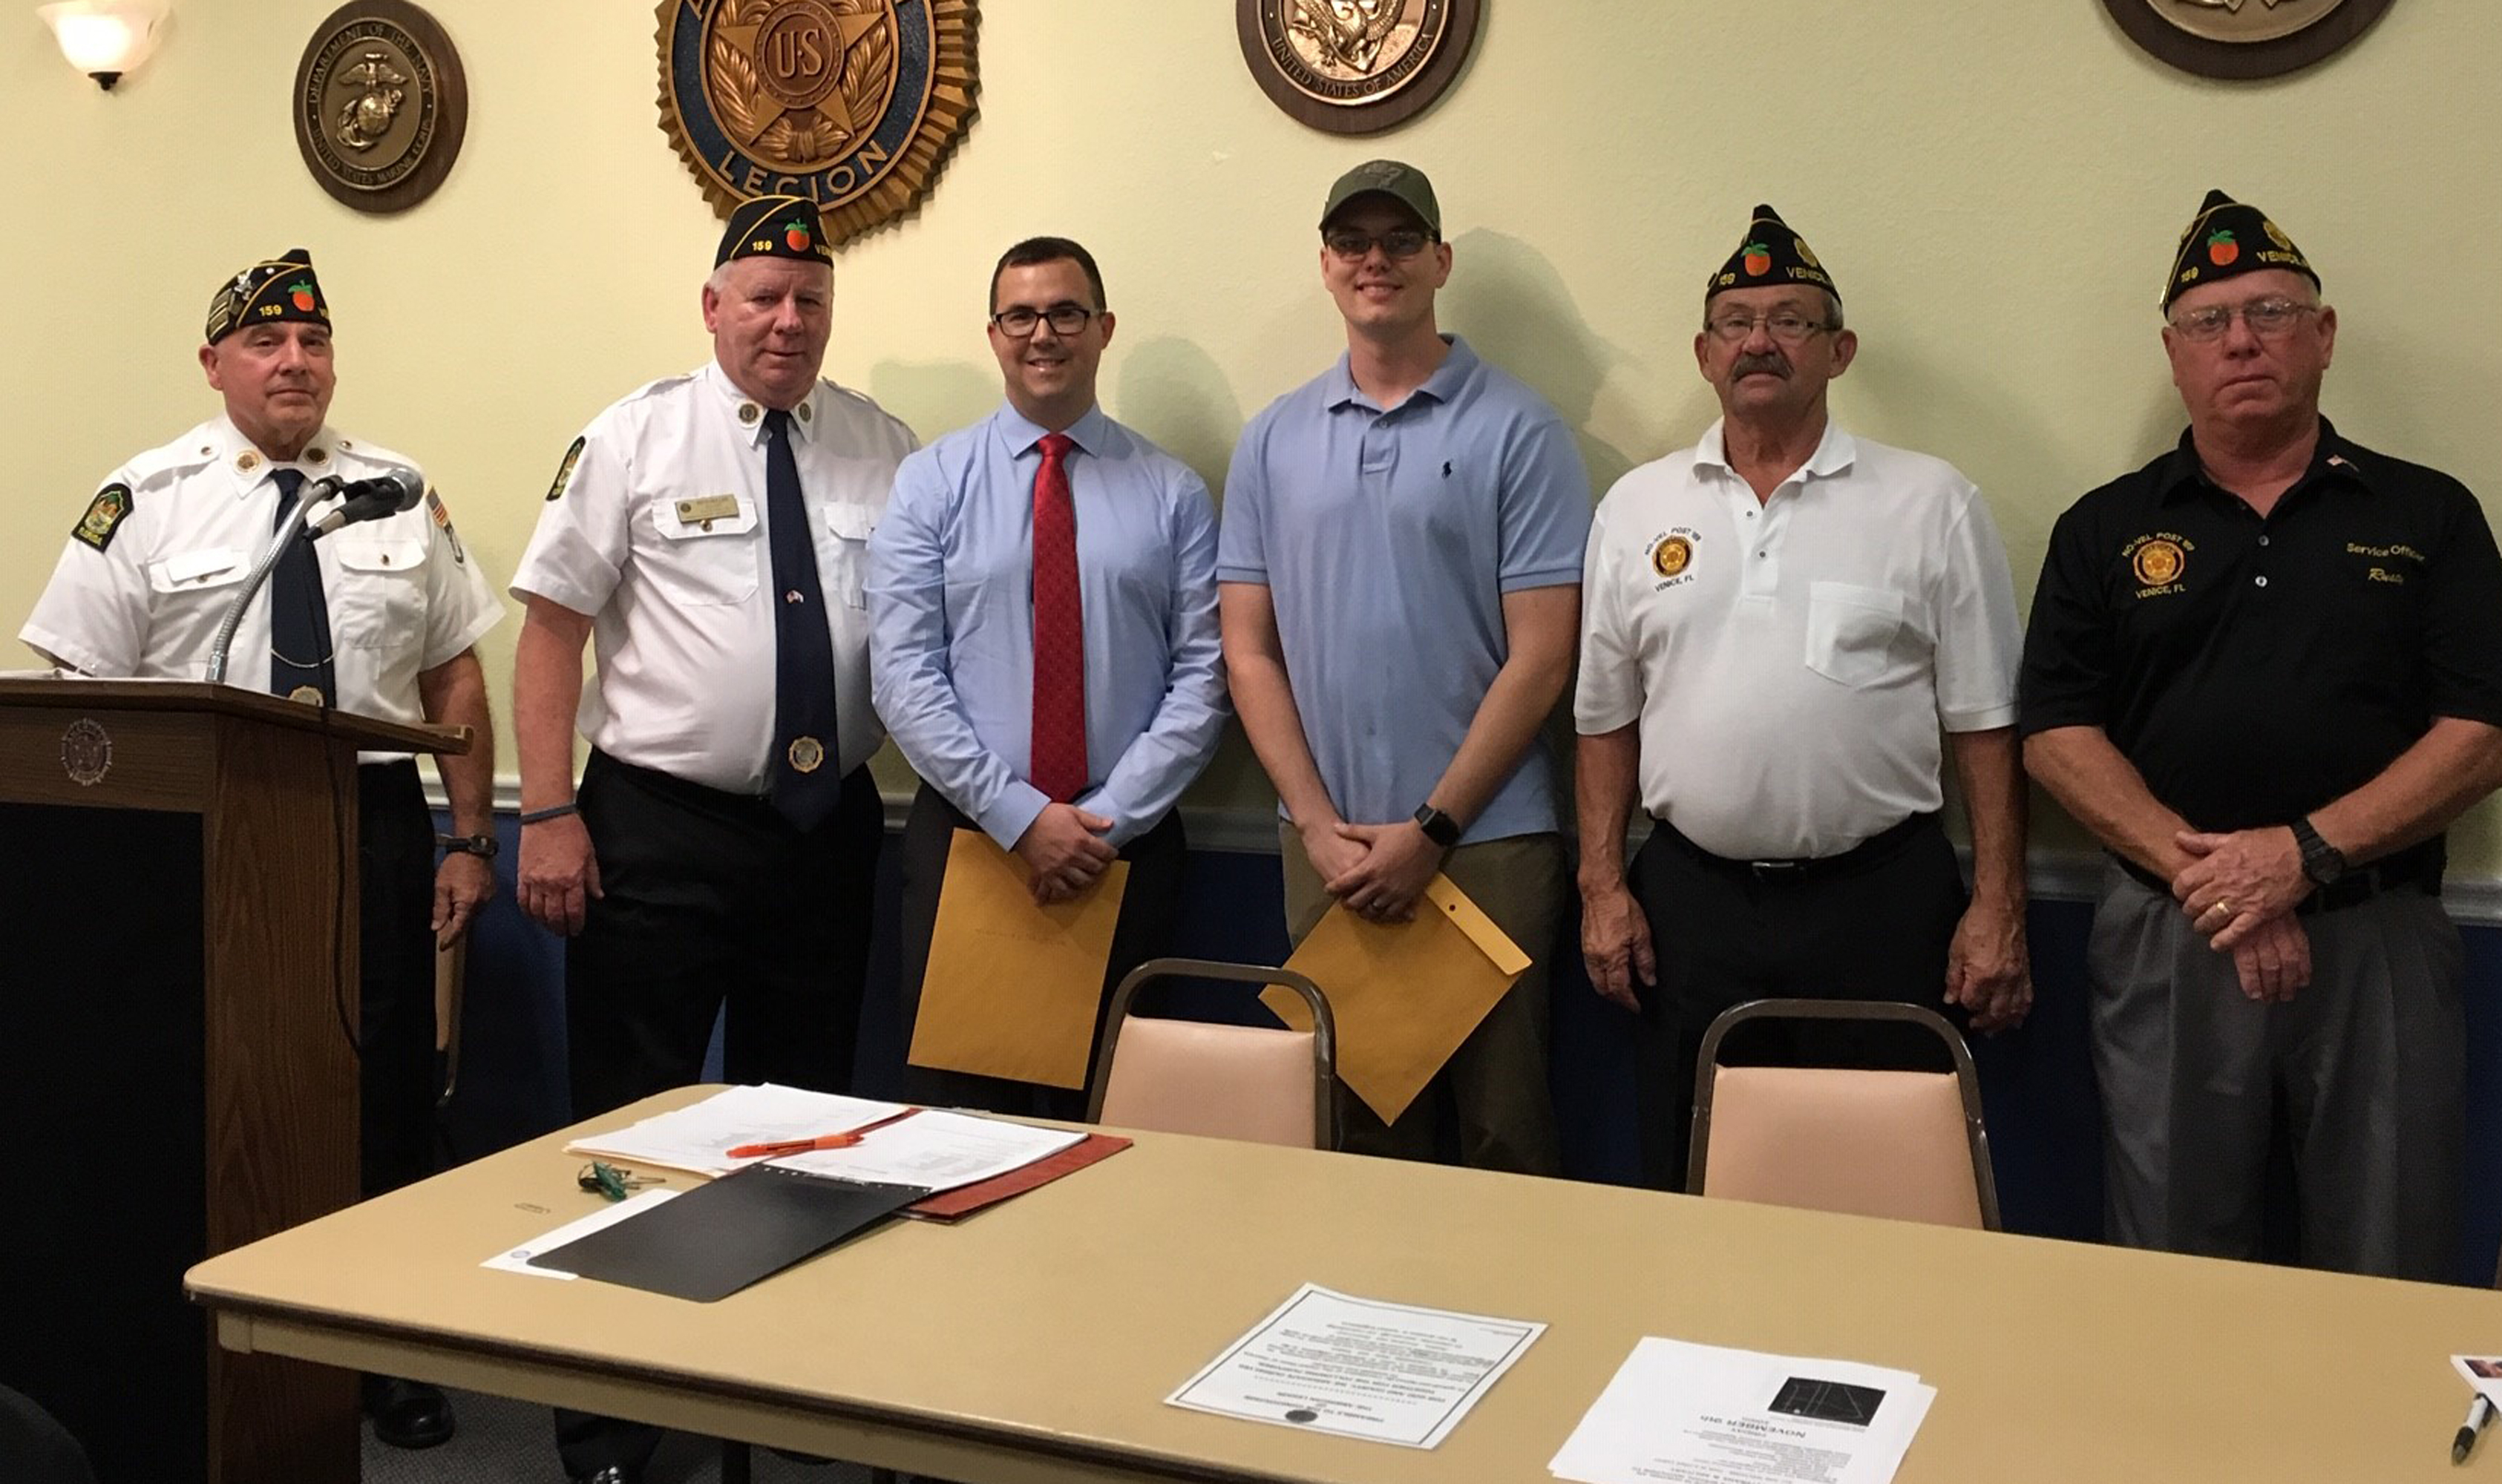 From left: Commander Howard Van Nostrand; Adjutant, Pete Muller; SCF Student Veteran Nicholas Bitler; SCF Student Veteran Jeffrey Guilbault Jr.; Services Officers, Frank Noren and Rusty Weatherhead.